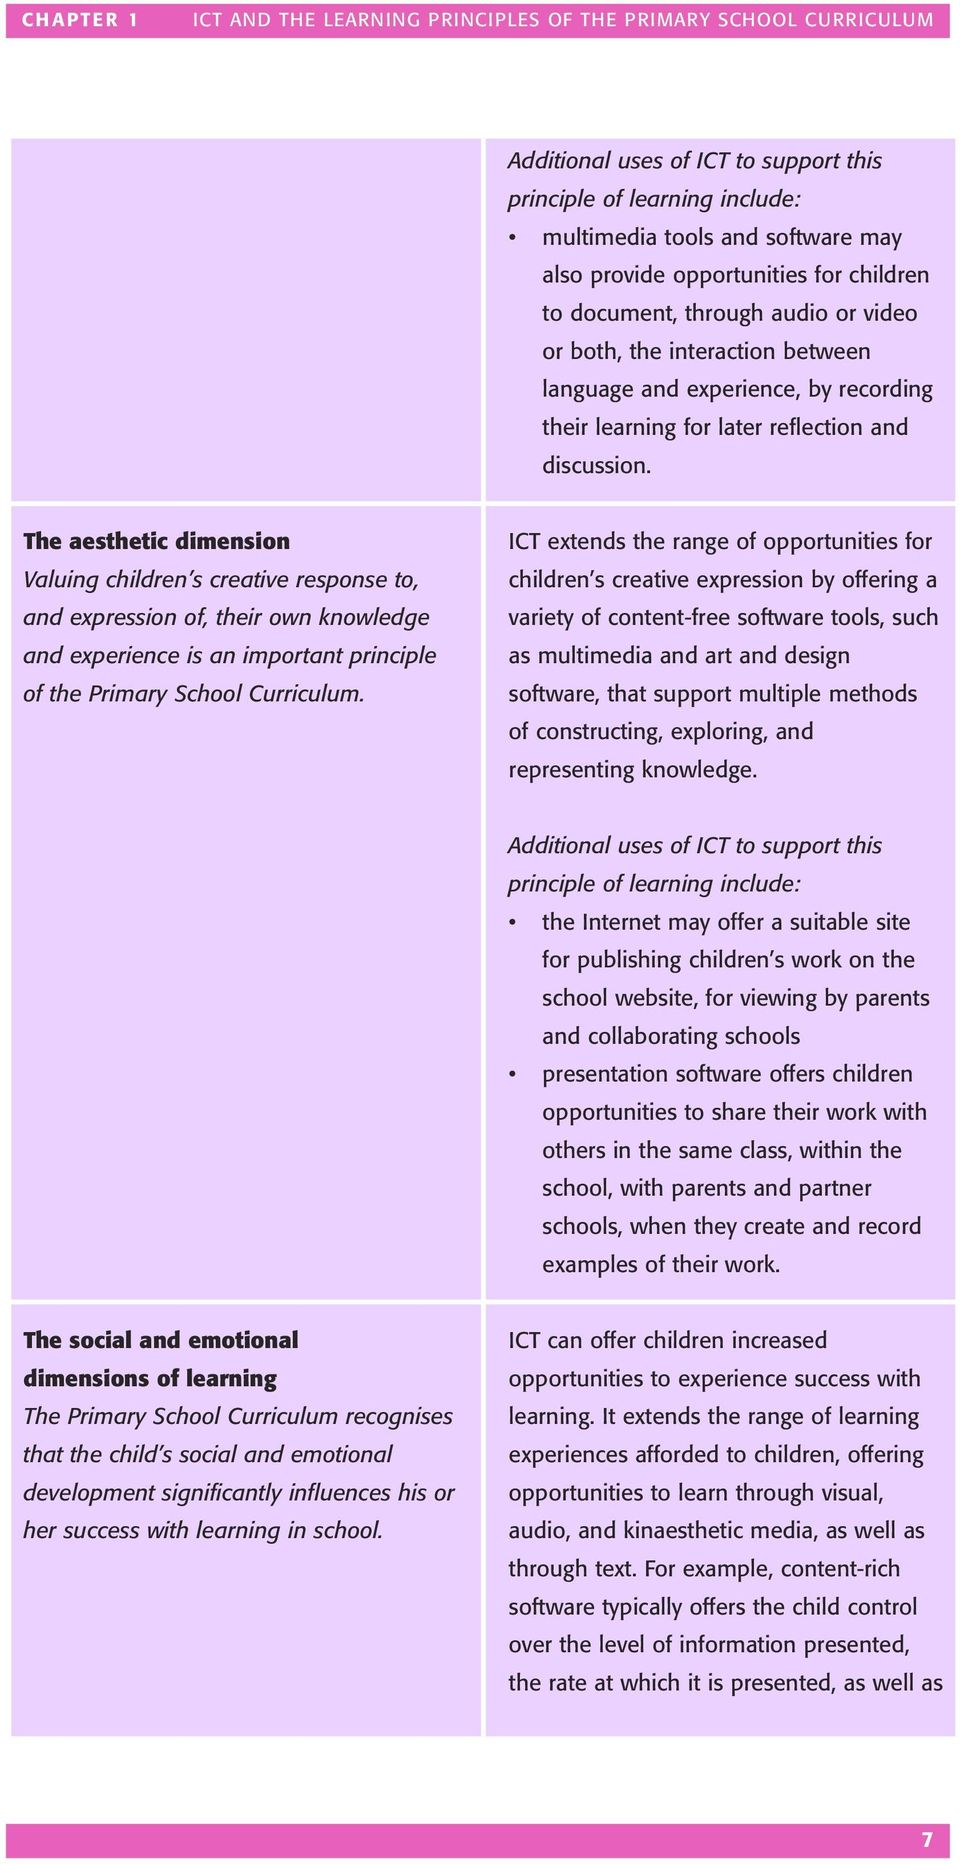 The aesthetic dimension Valuing children s creative response to, and expression of, their own knowledge and experience is an important principle of the Primary School Curriculum.